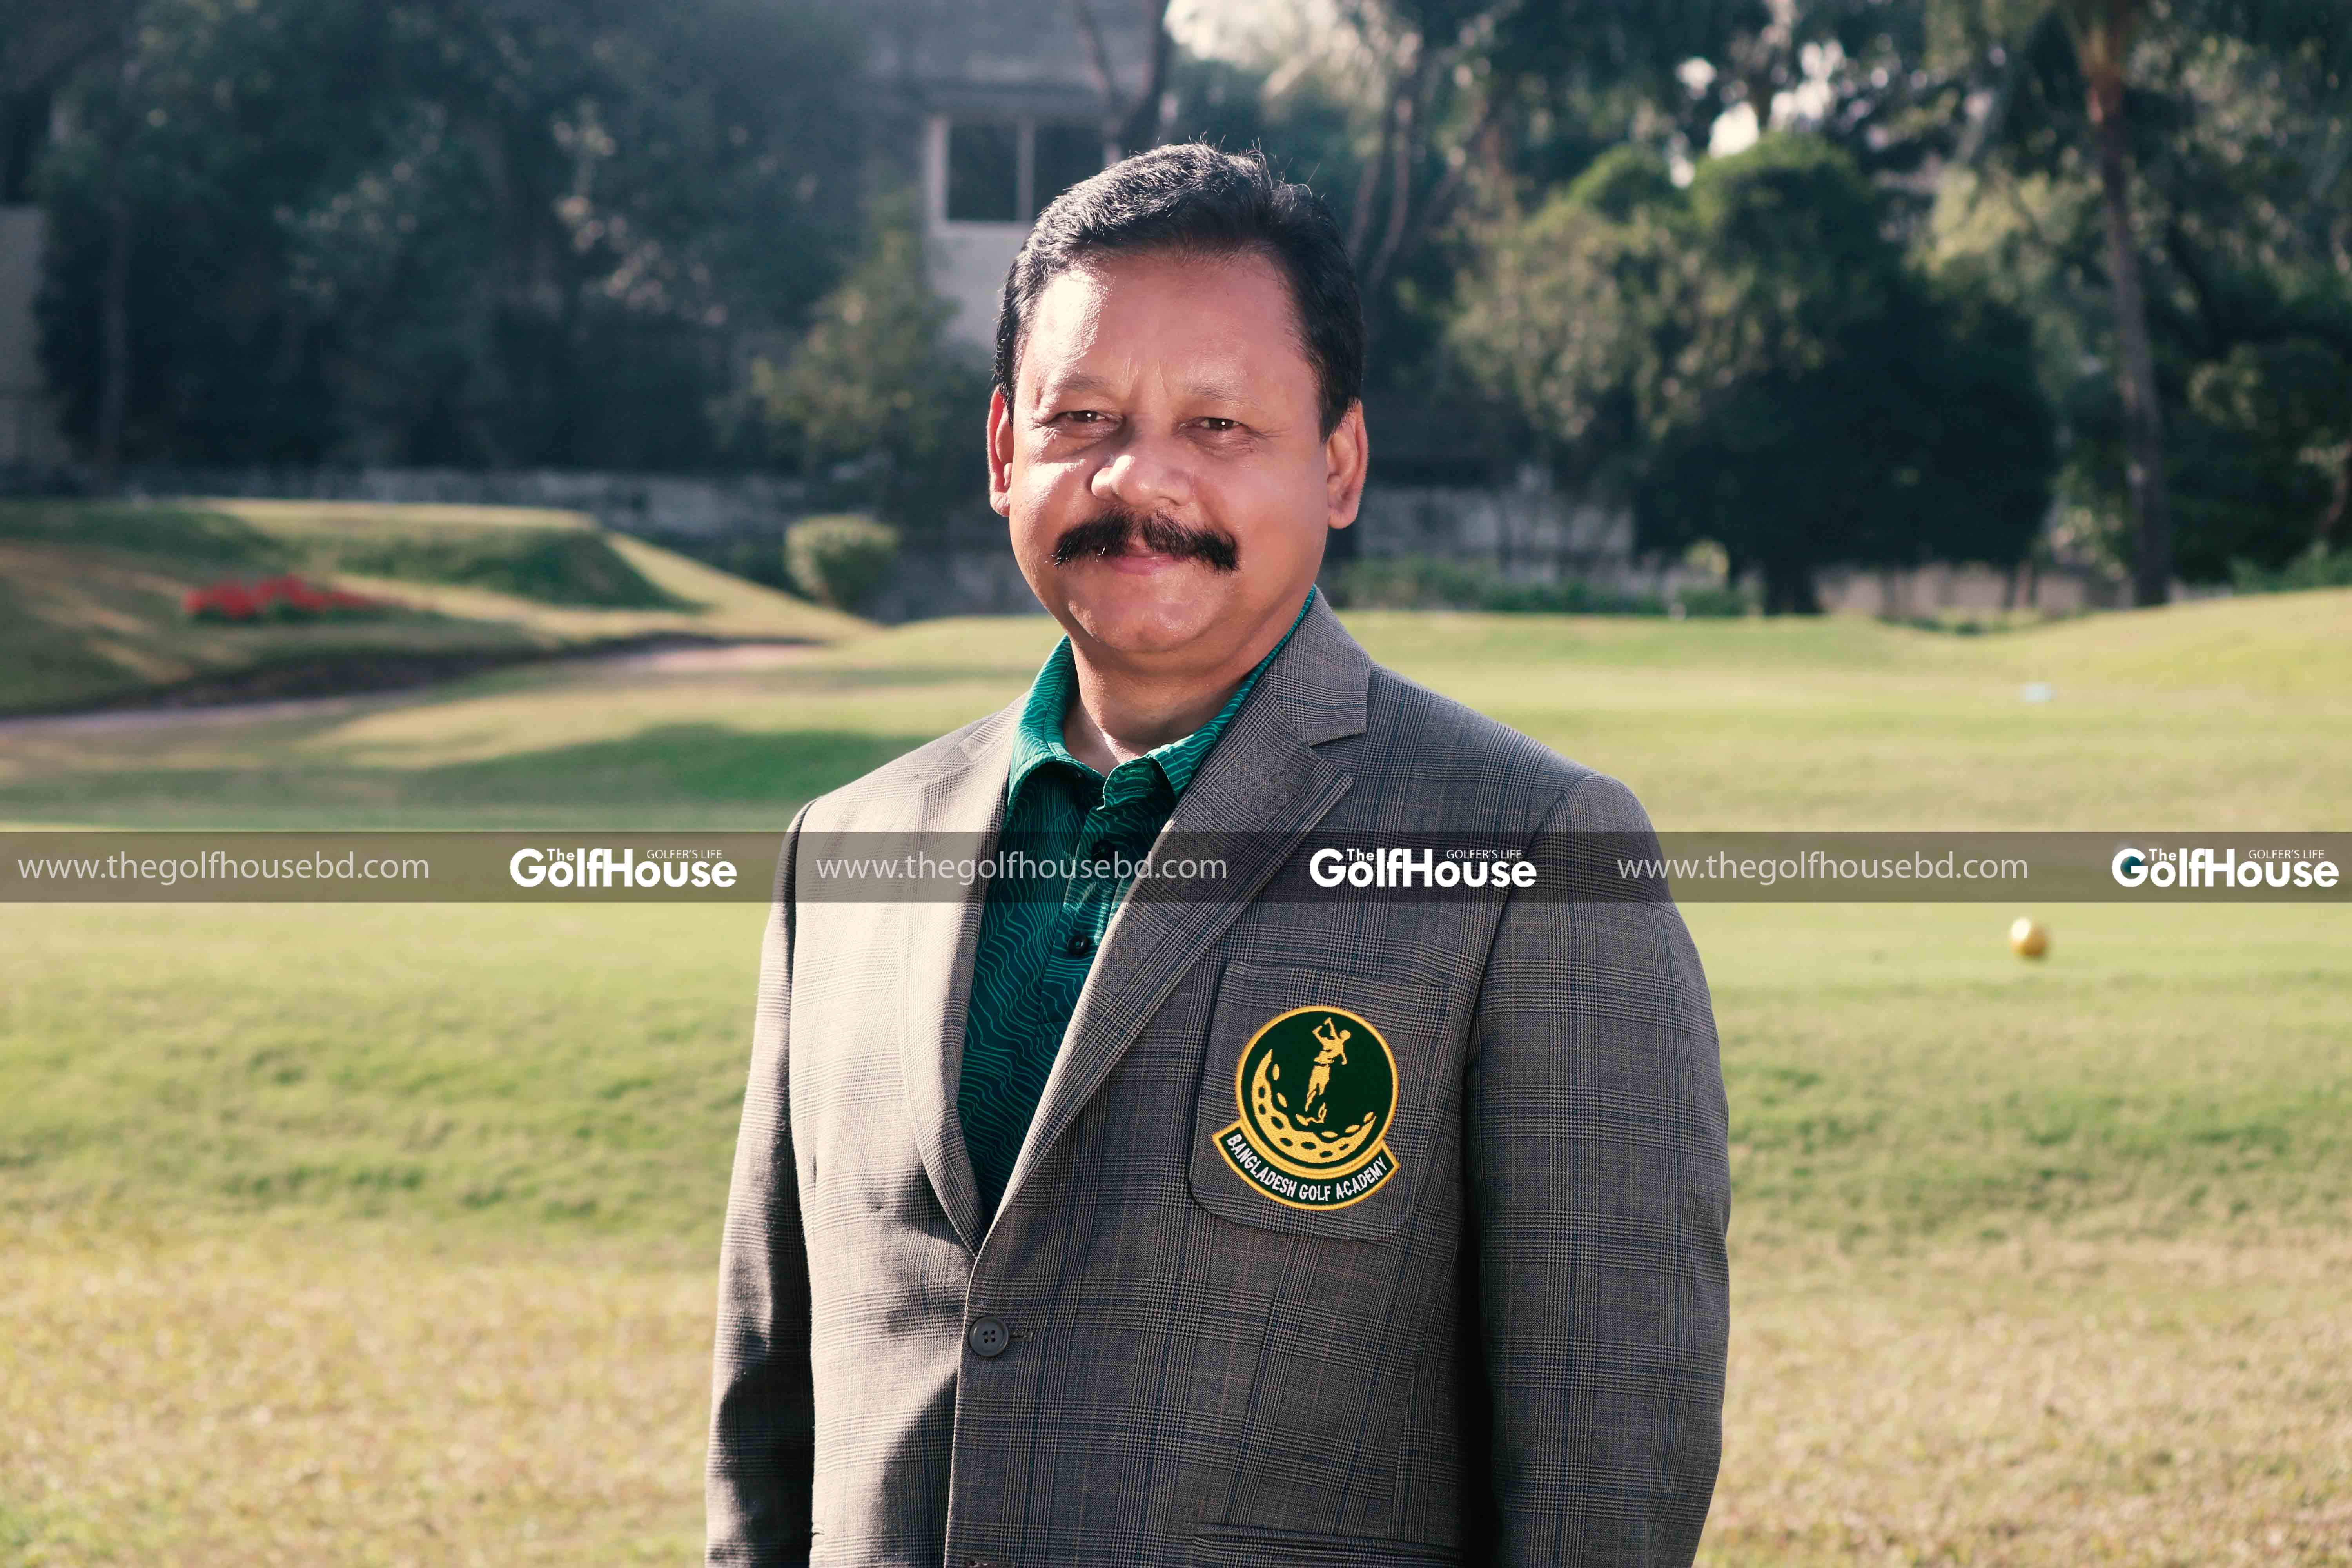 Maj (retd) Golam Morshed,psc is the director of golf training at the Bangladesh Golf Academy. With close to two decades of experience in golf, Mr. Morshed brings to the board a wide array of experience and expertise.